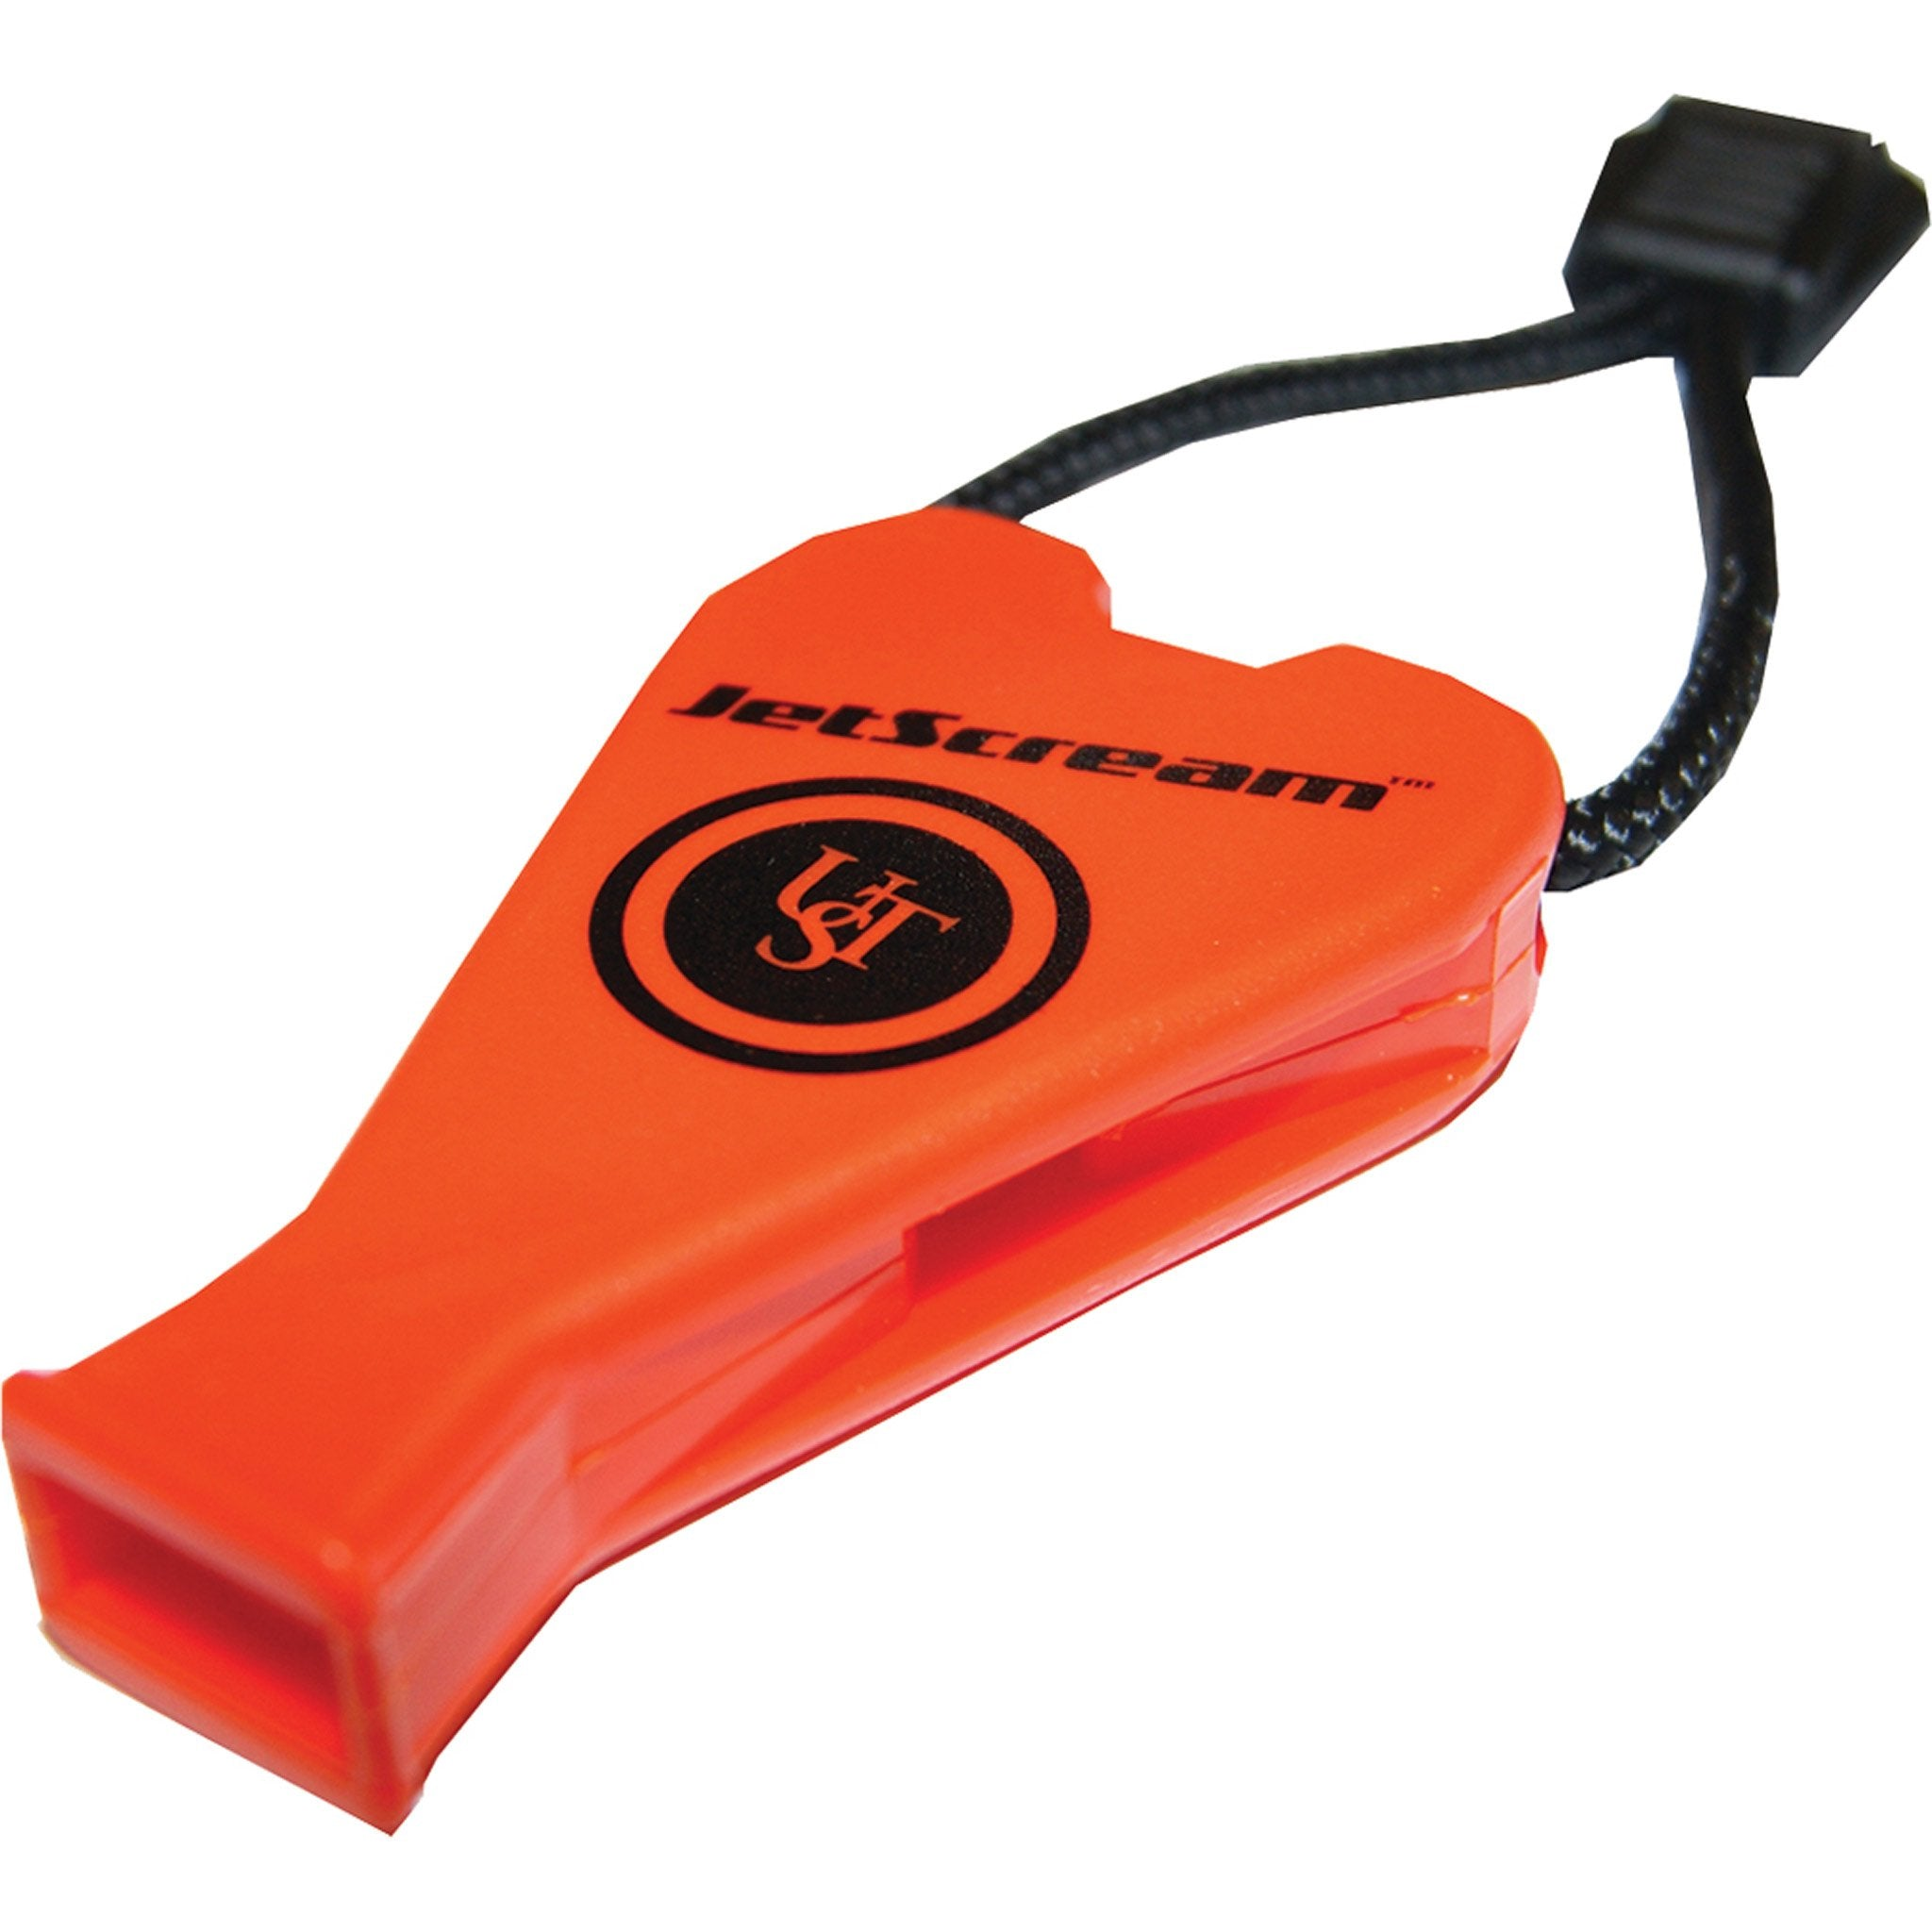 UST JetScream Marine Whistle - Arthur Beale